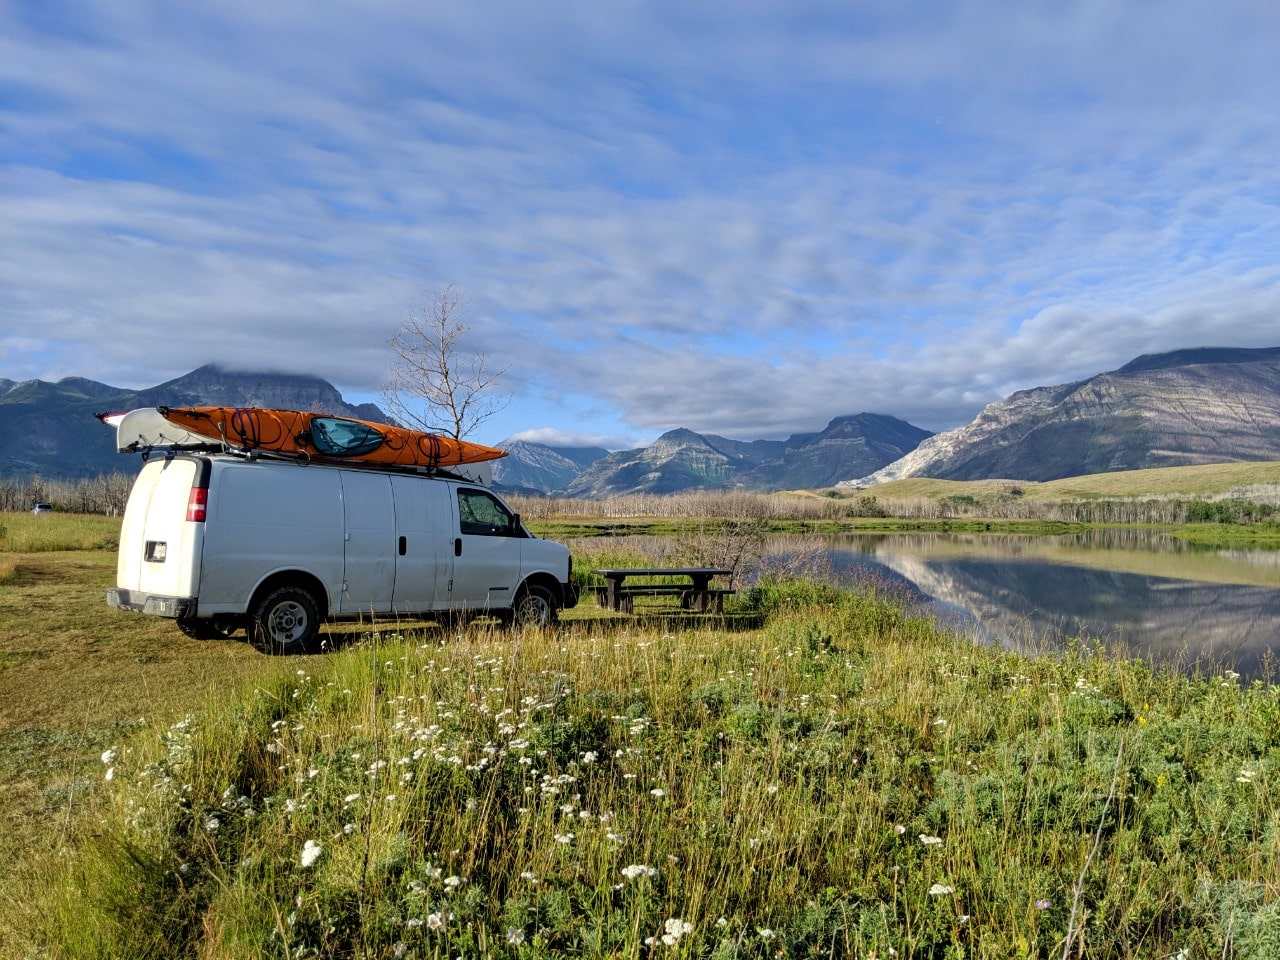 White van parked next to river with mountains in background